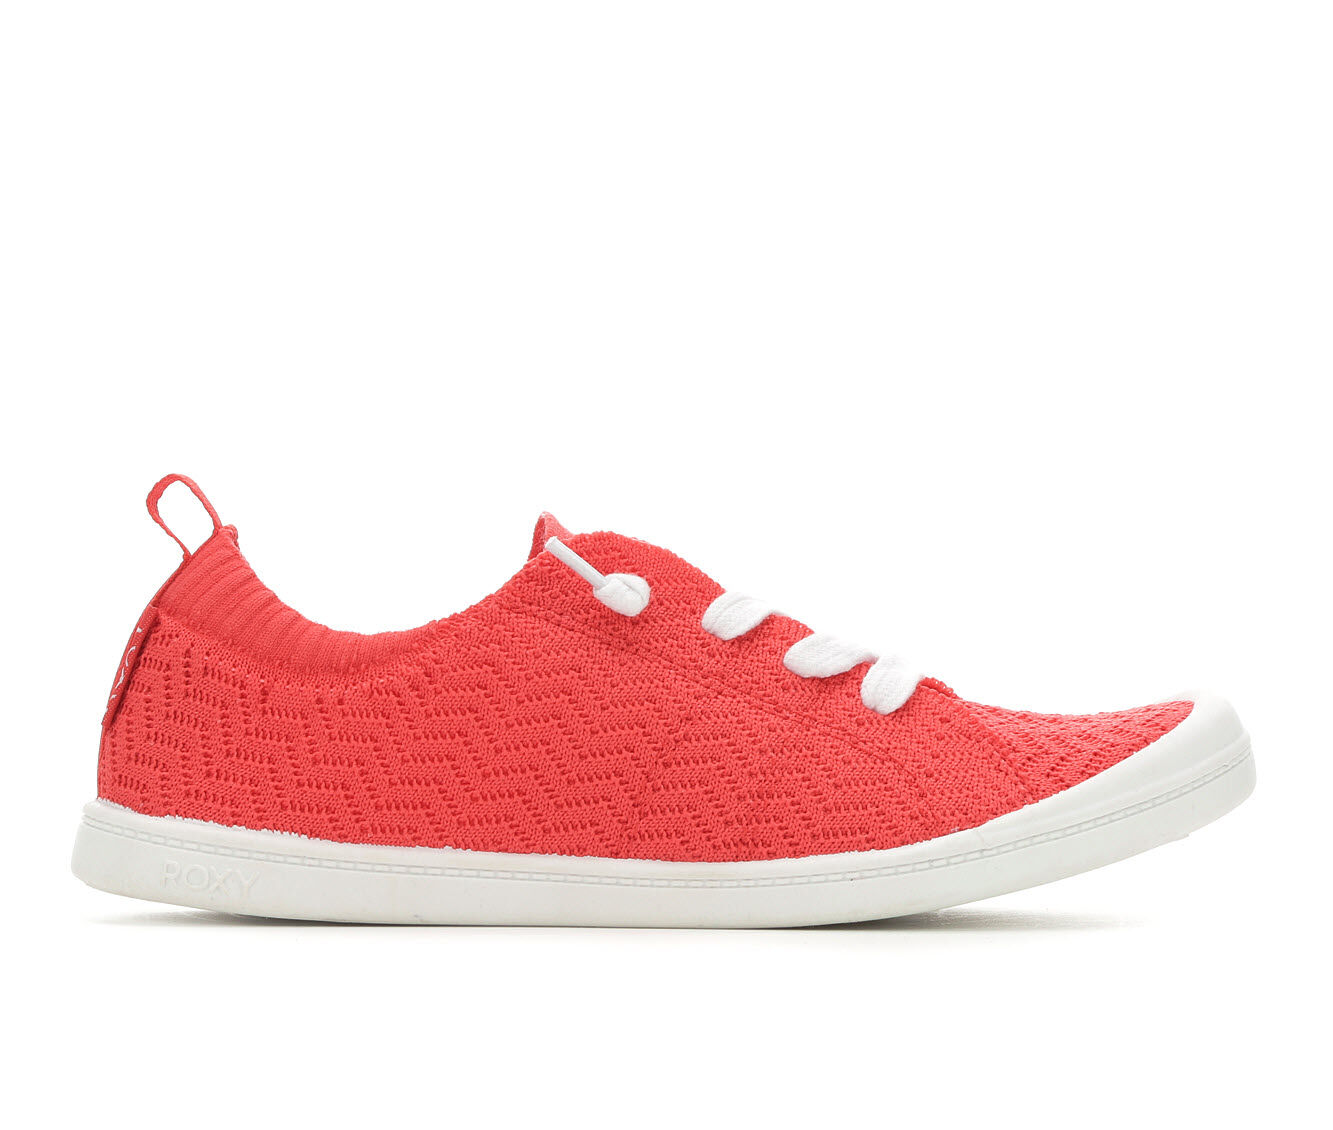 official Women's Roxy Bayshore Sneakers Red Knit